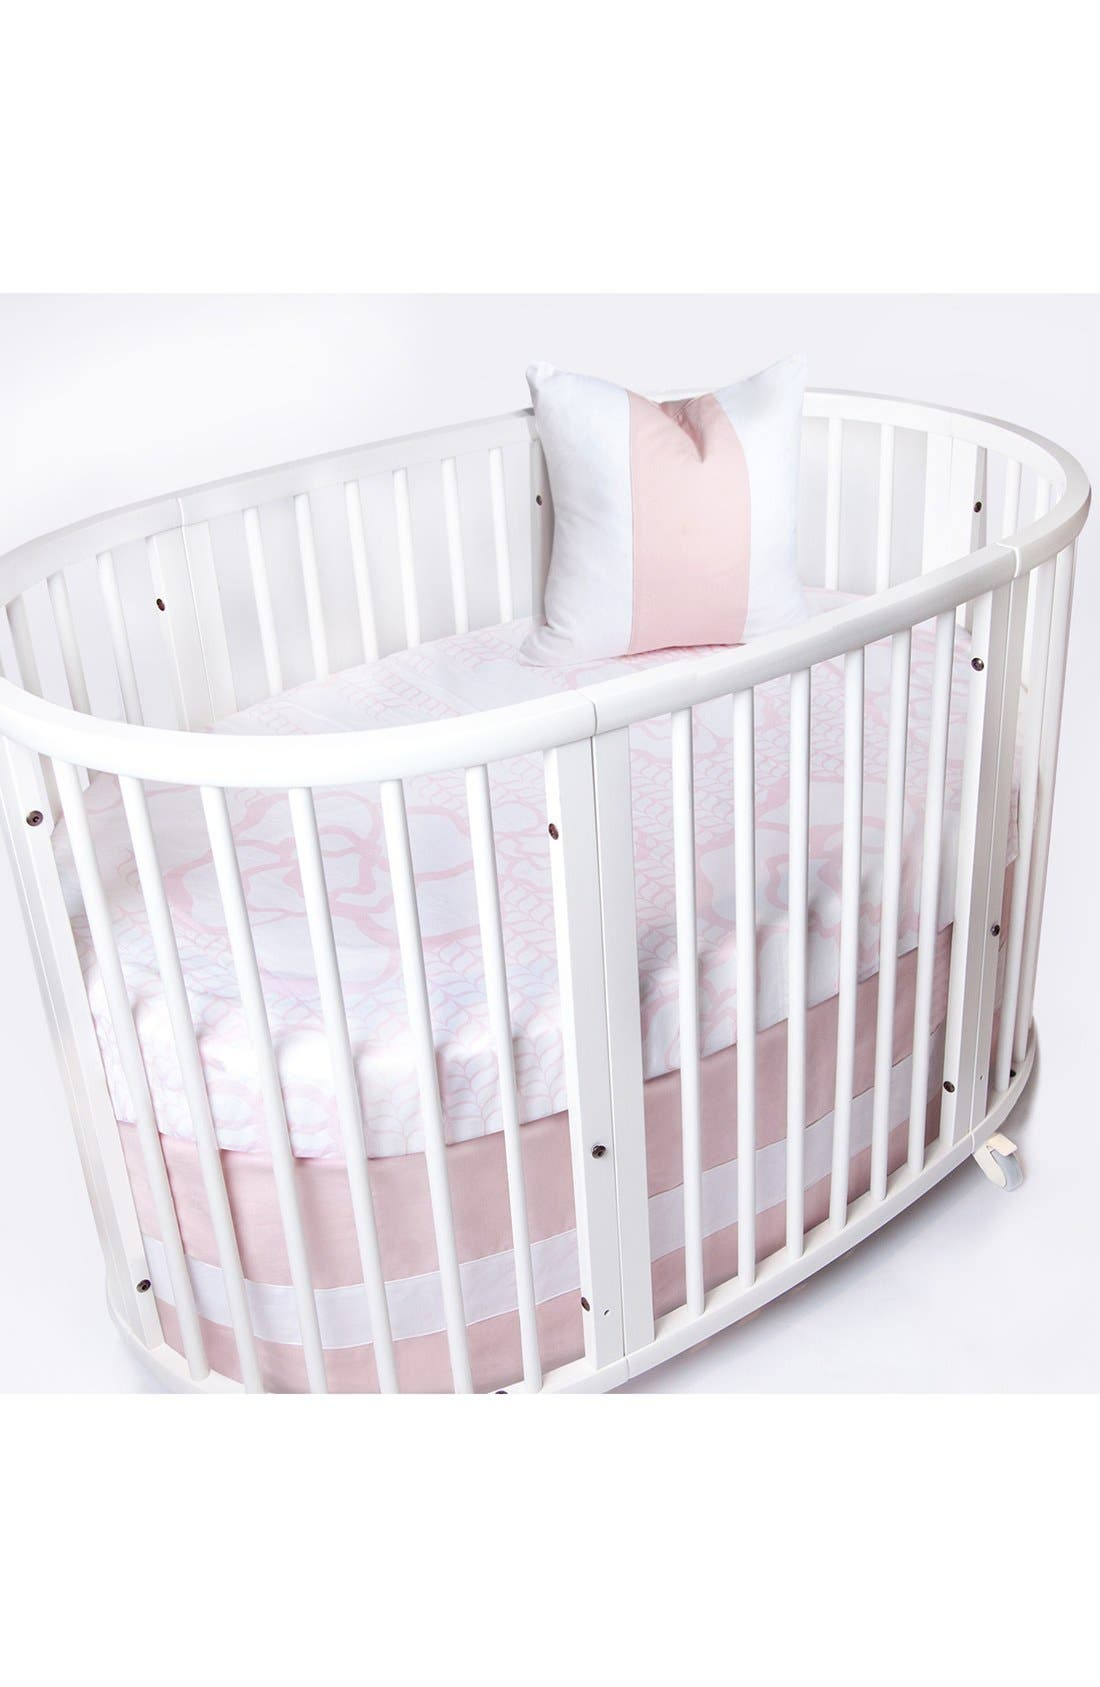 OILO Woven Band Crib Skirt for Stokke Sleepi